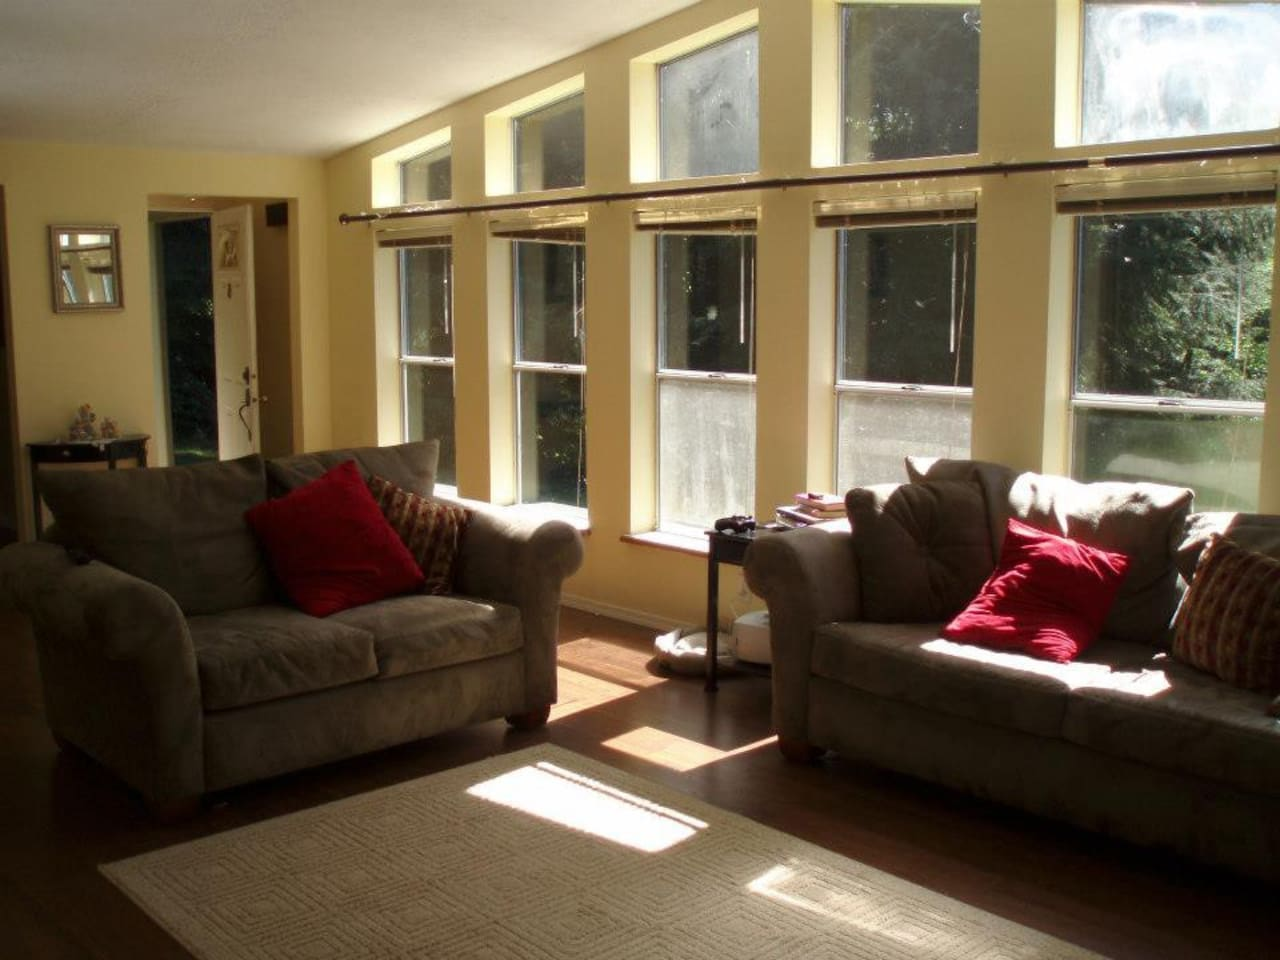 The living room is especially relaxing with its large windows that let in the sun and surrounding forest.